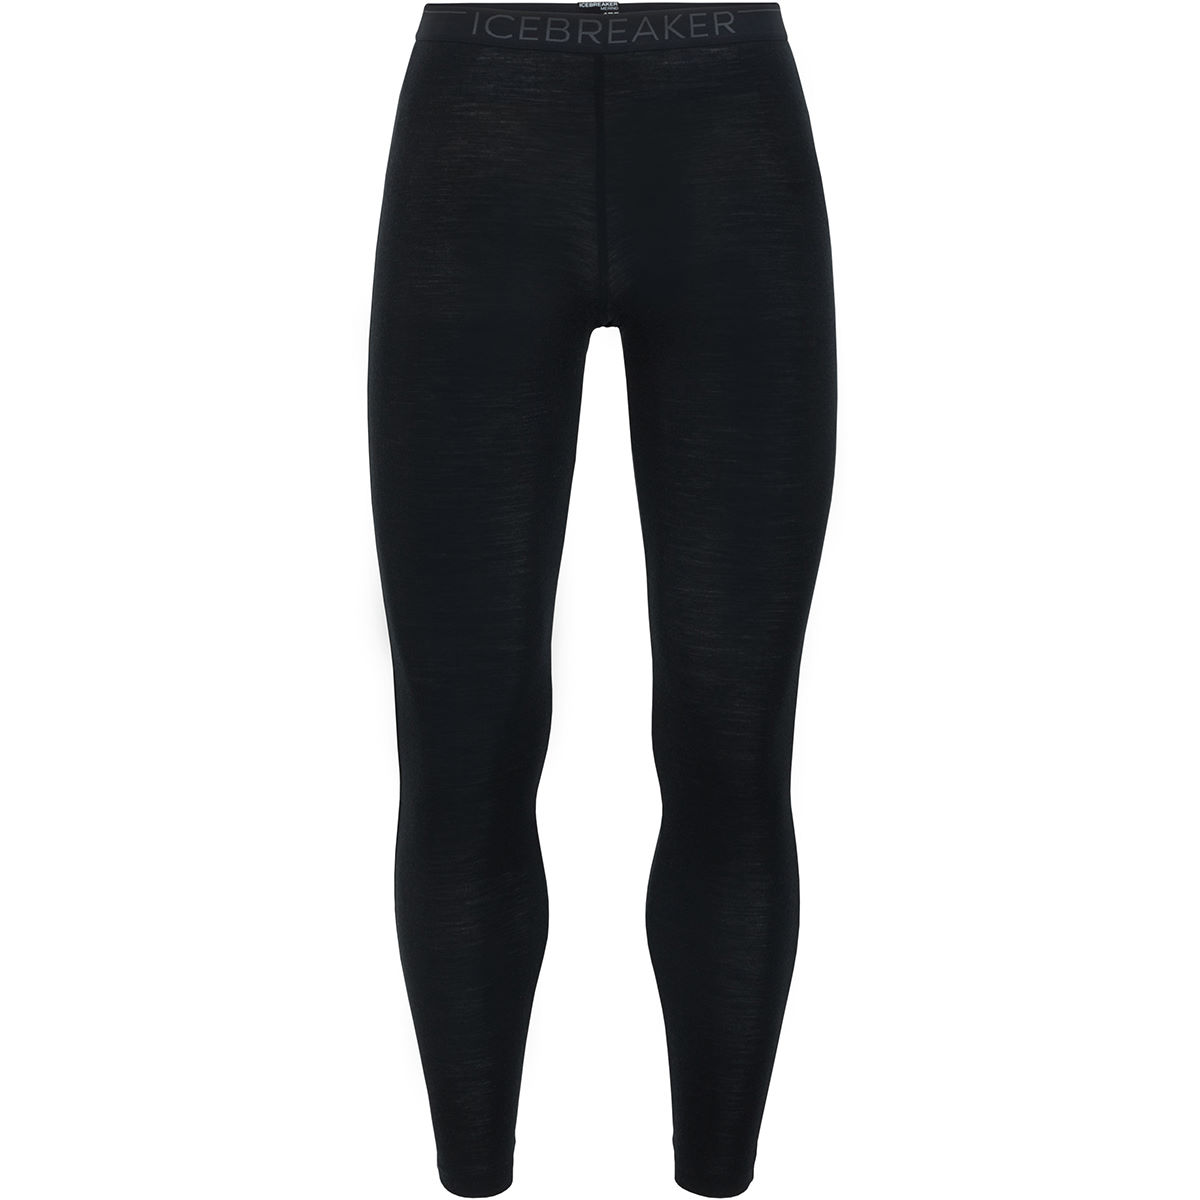 Icebreaker 175 Everyday Merino Leggings - Mallas interiores